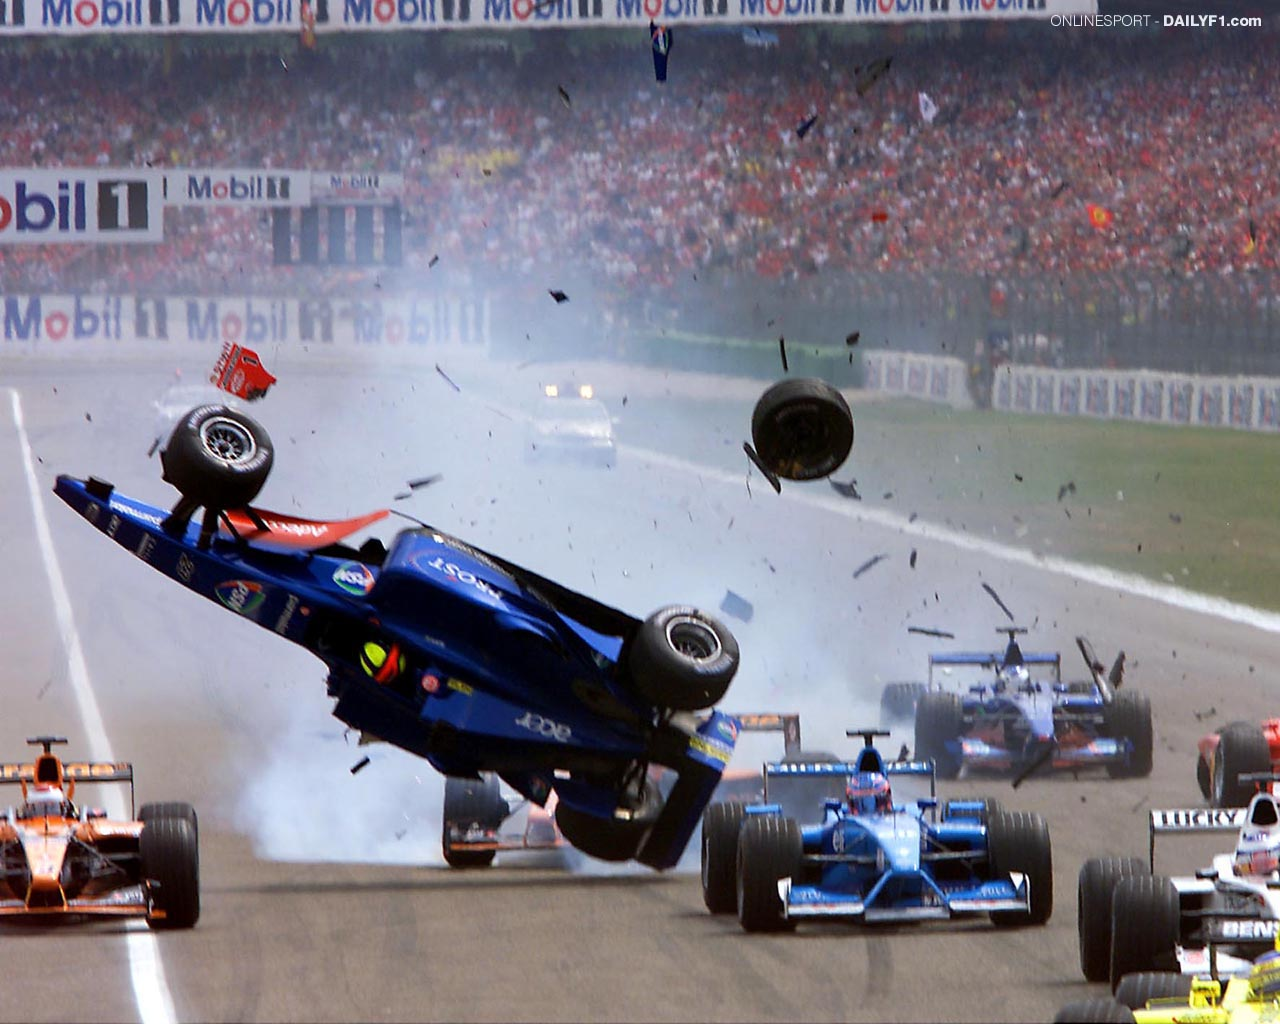 f1 accident, formula 1 accident, car crash